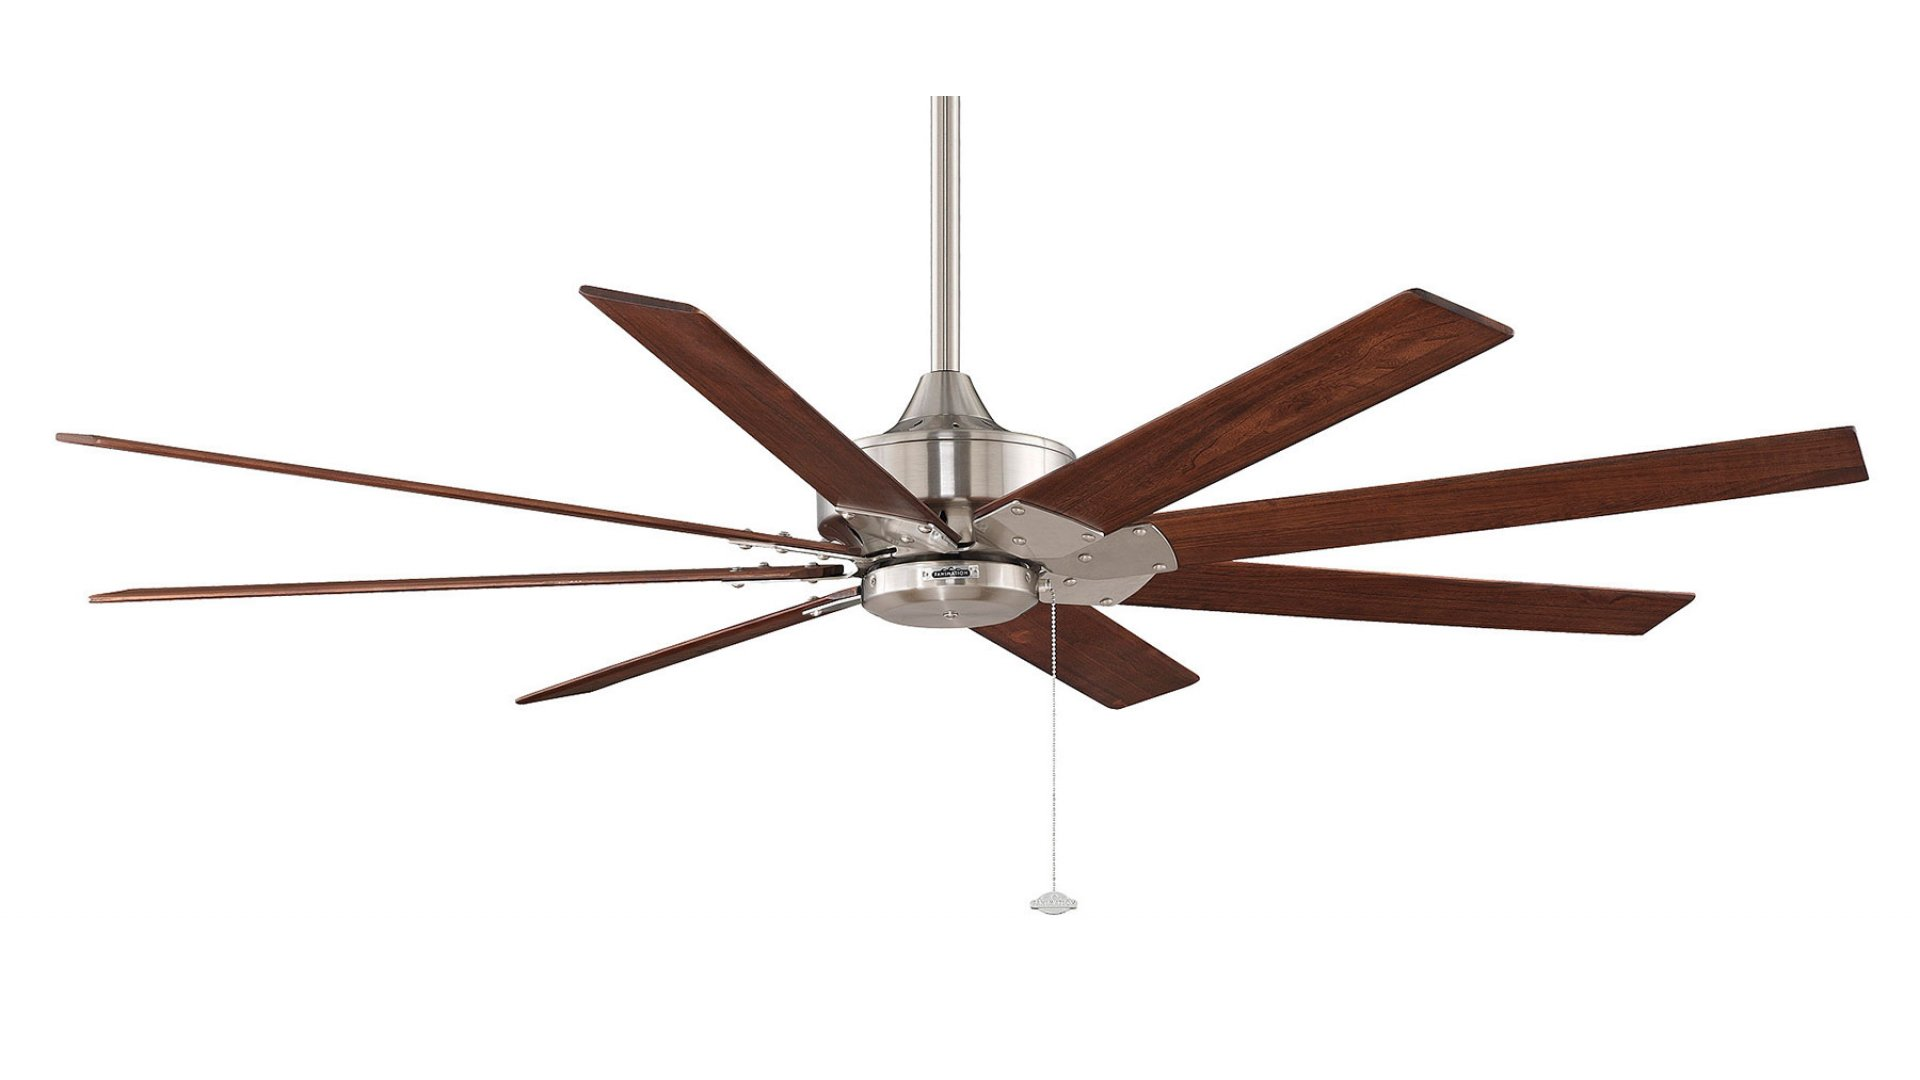 Fanimation levon series model fp7910bn 63 brushed nickel ceiling fanimation levon series model fp7910bn 63 brushed nickel ceiling fan dry location aloadofball Choice Image